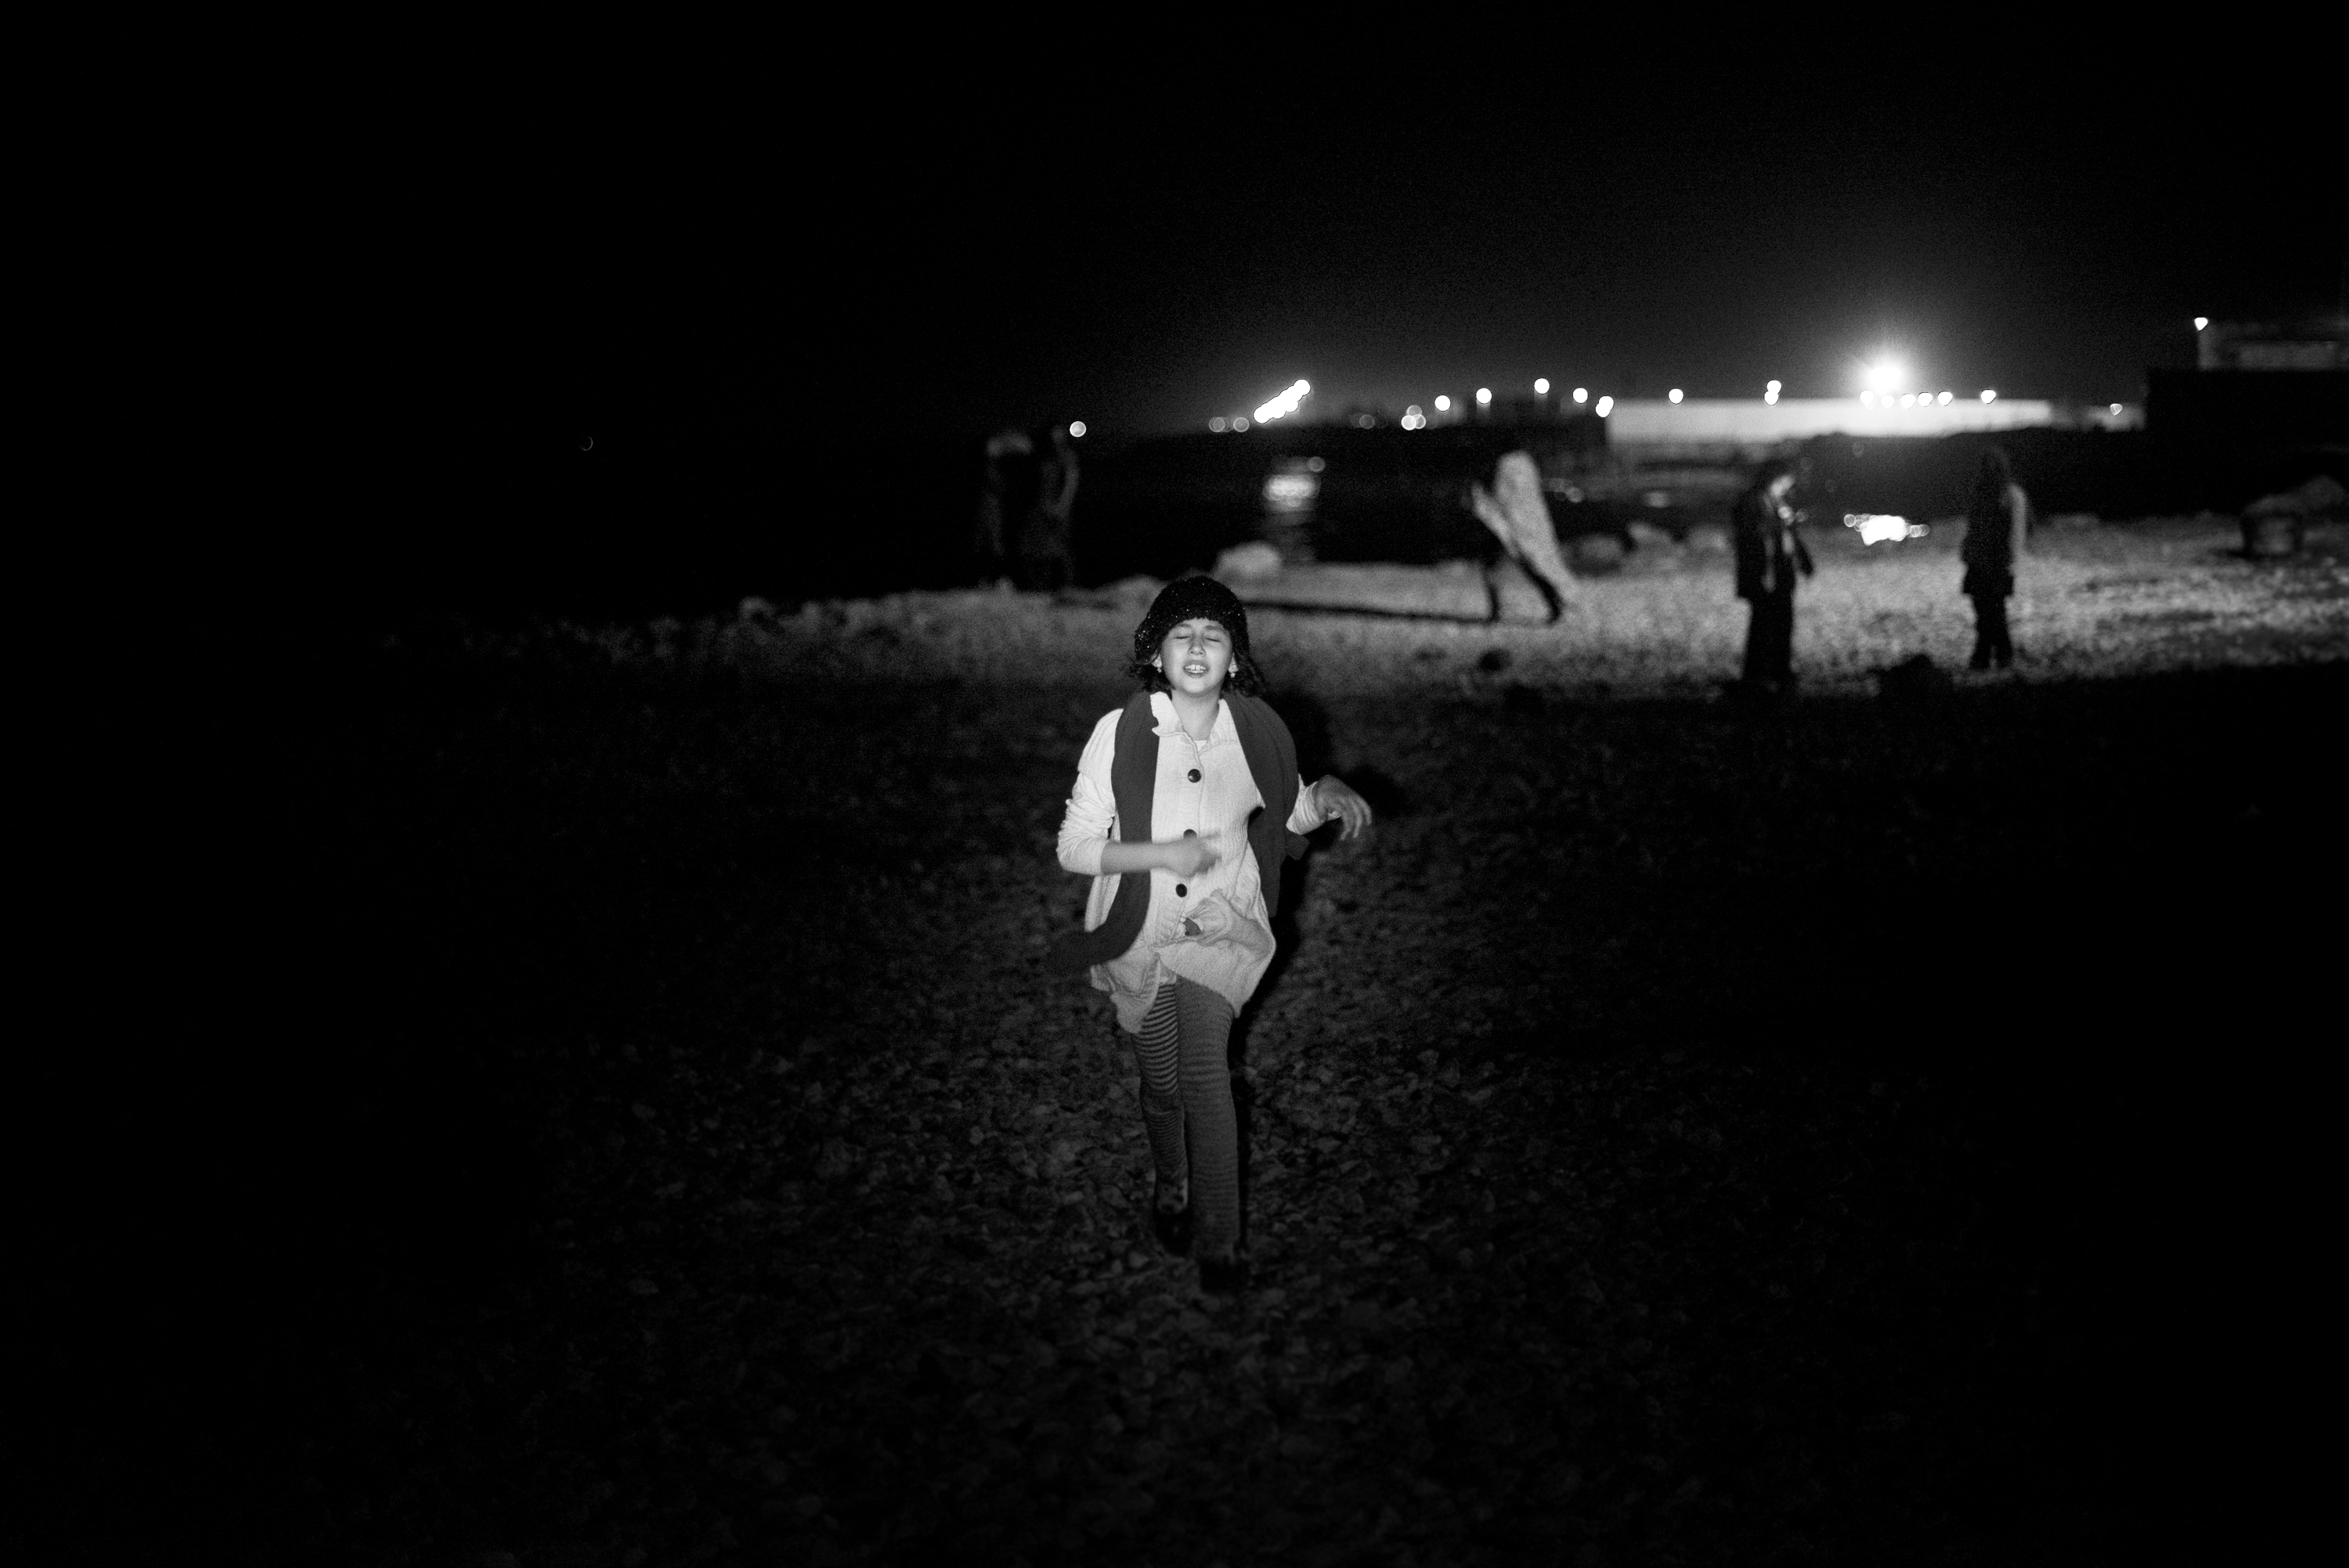 © Hashem Shakeri. 	(2014) Delnia, the 12 year old girl who has come to the beach with her family for fun. She is running toward the flashlight her father is shining at her. Babolsar, Iran